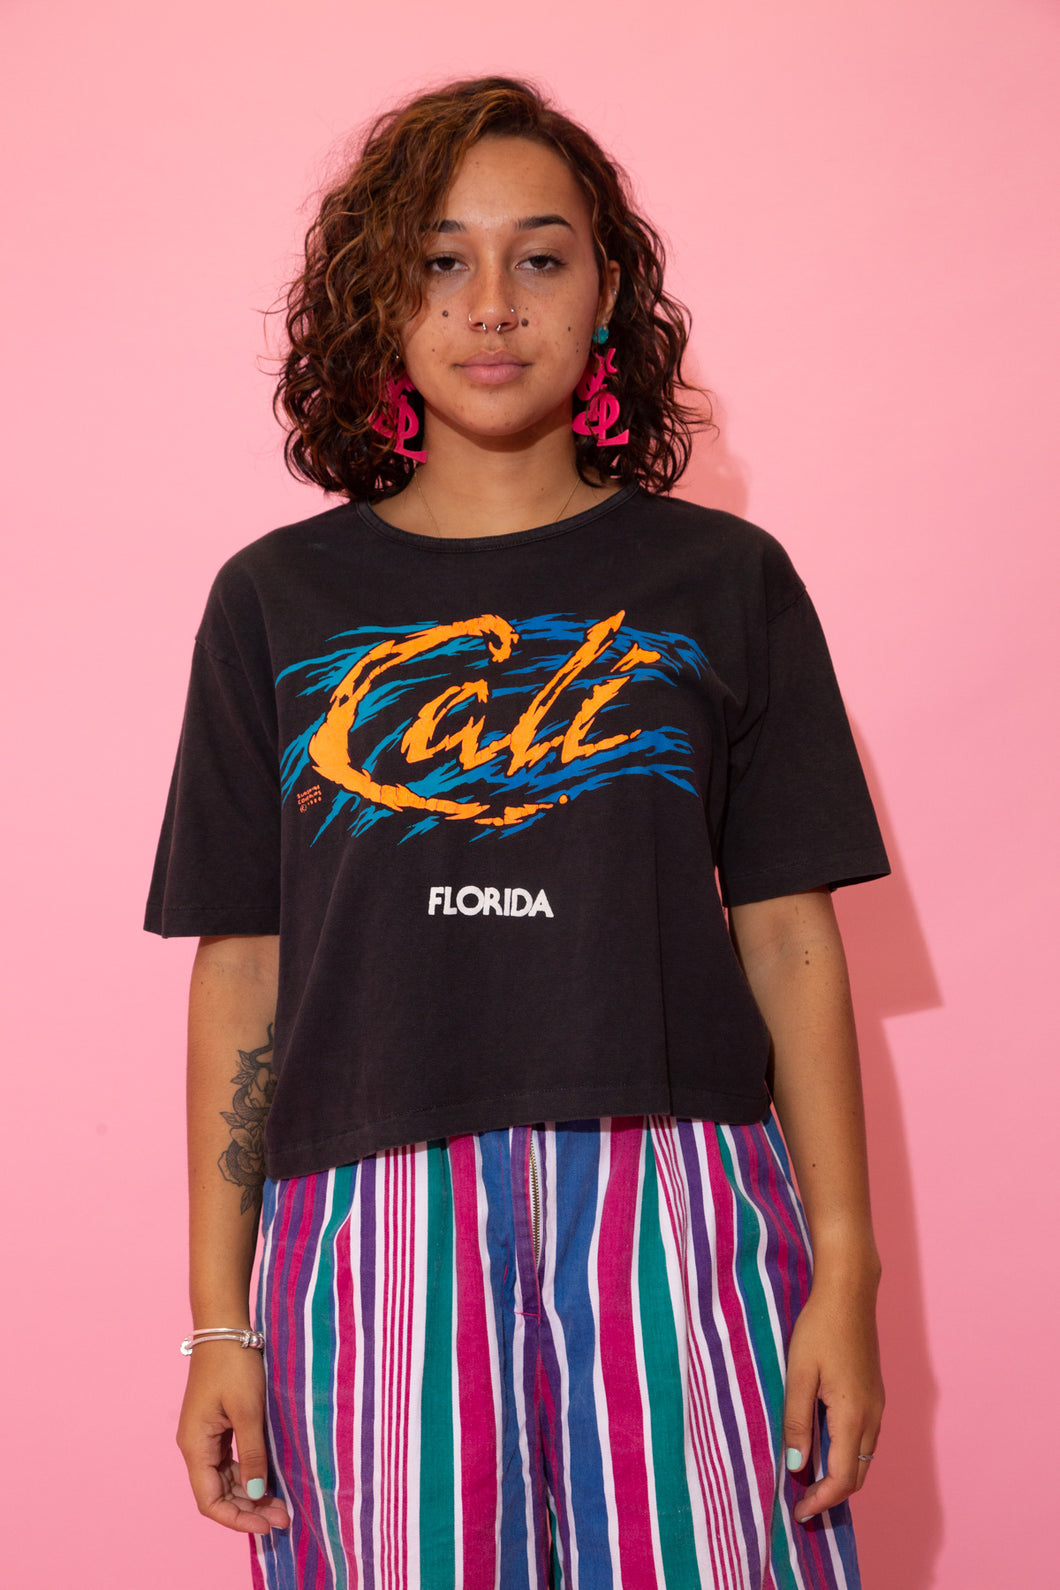 the model wears a black crop with a cali florida graphic on the front